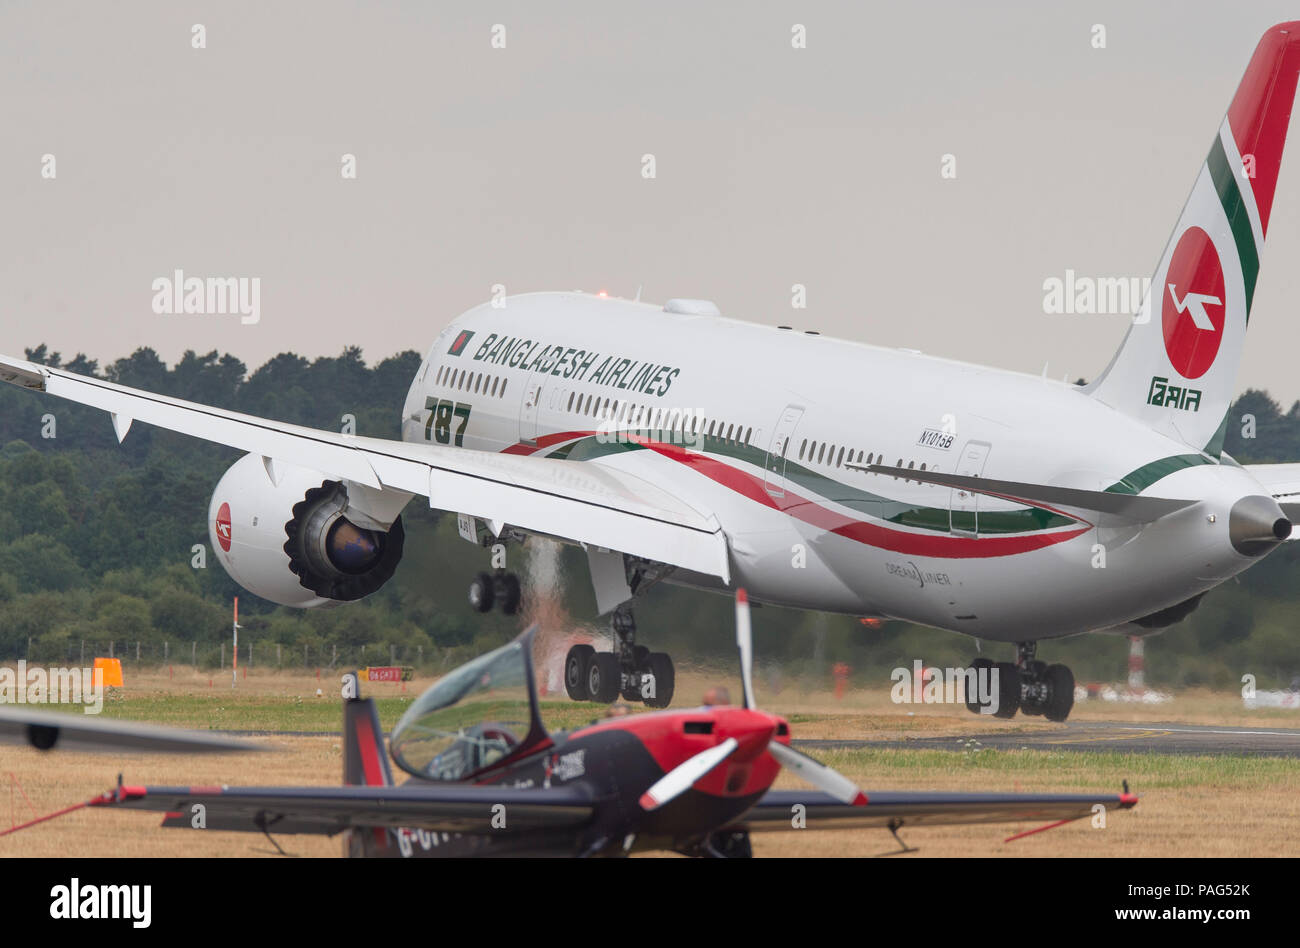 Boeing 787 Dreamliner of Bangladesh Airlines leaves Farnborough at the end of the 2018 Trade Airshow, with a small Blades aircraft in the foreground. - Stock Image